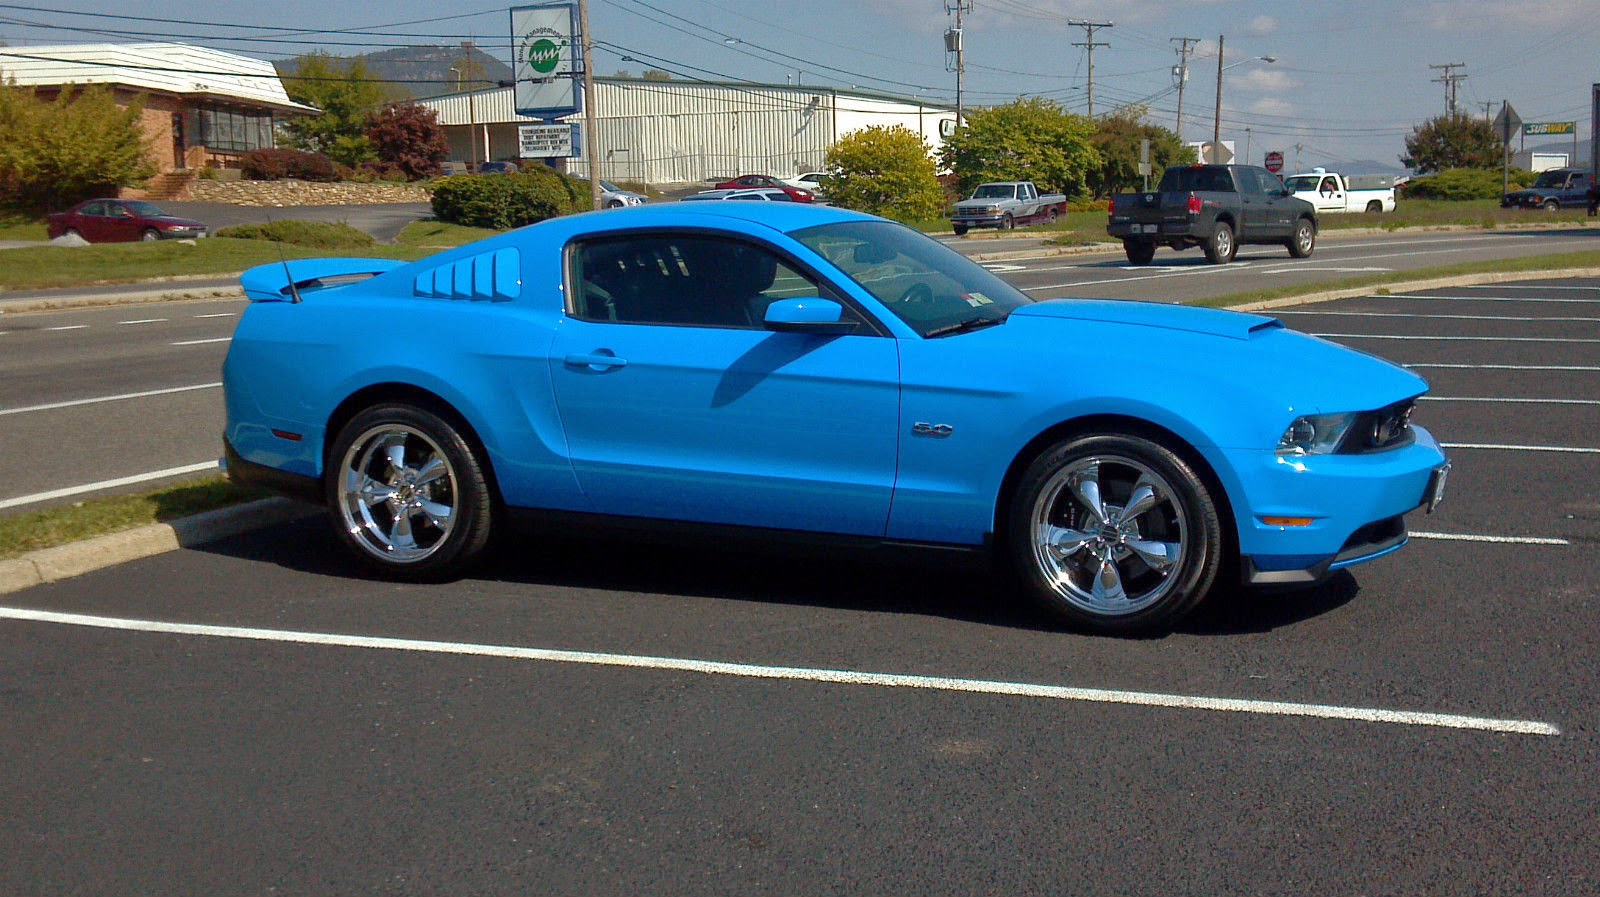 2011 grabber blue ford mustang gt 5 0 for sale american muscle cars. Black Bedroom Furniture Sets. Home Design Ideas